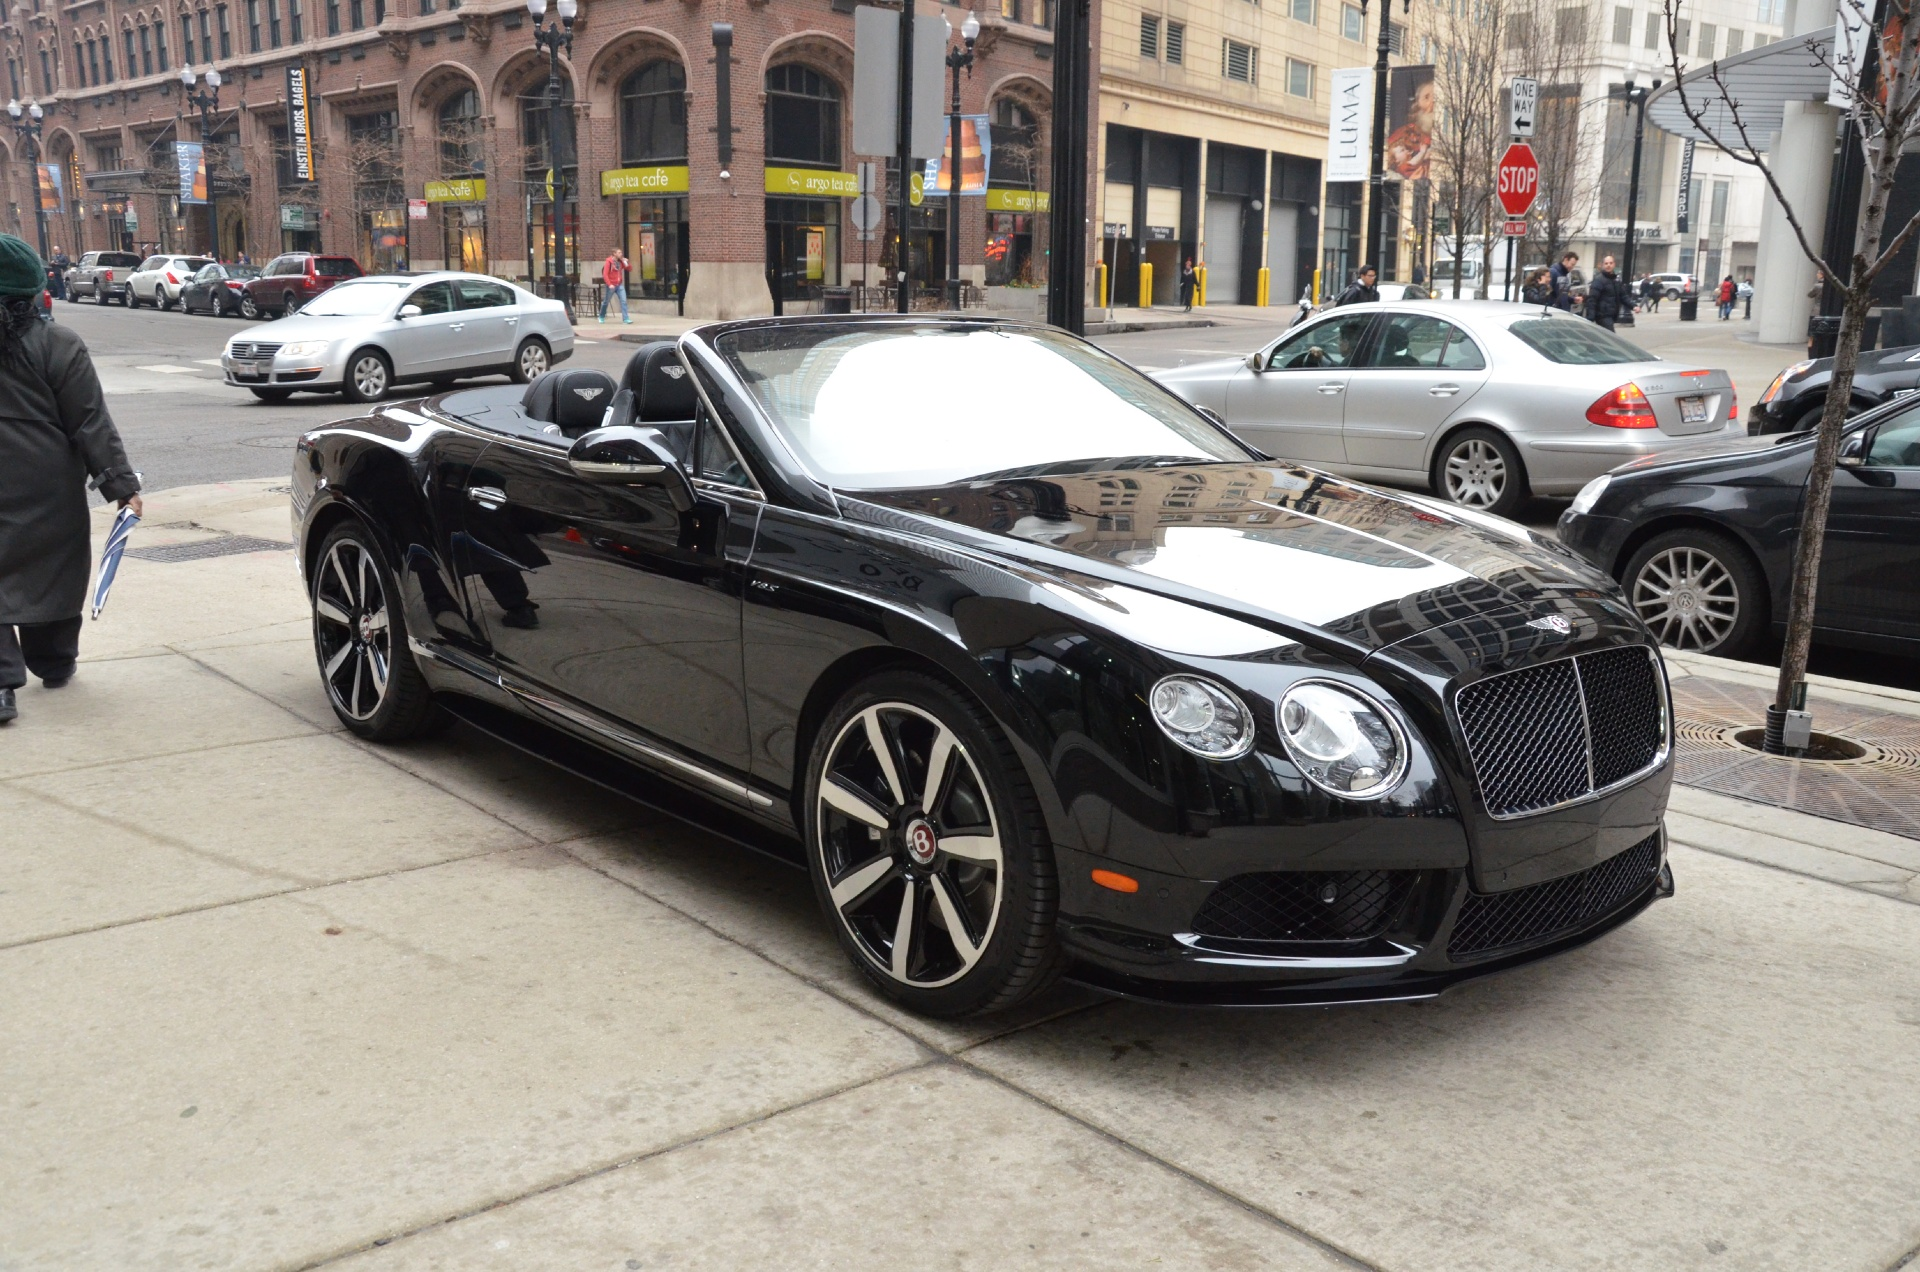 2015 Bentley Continental GTC V8 S Stock B693 for sale near Chicago